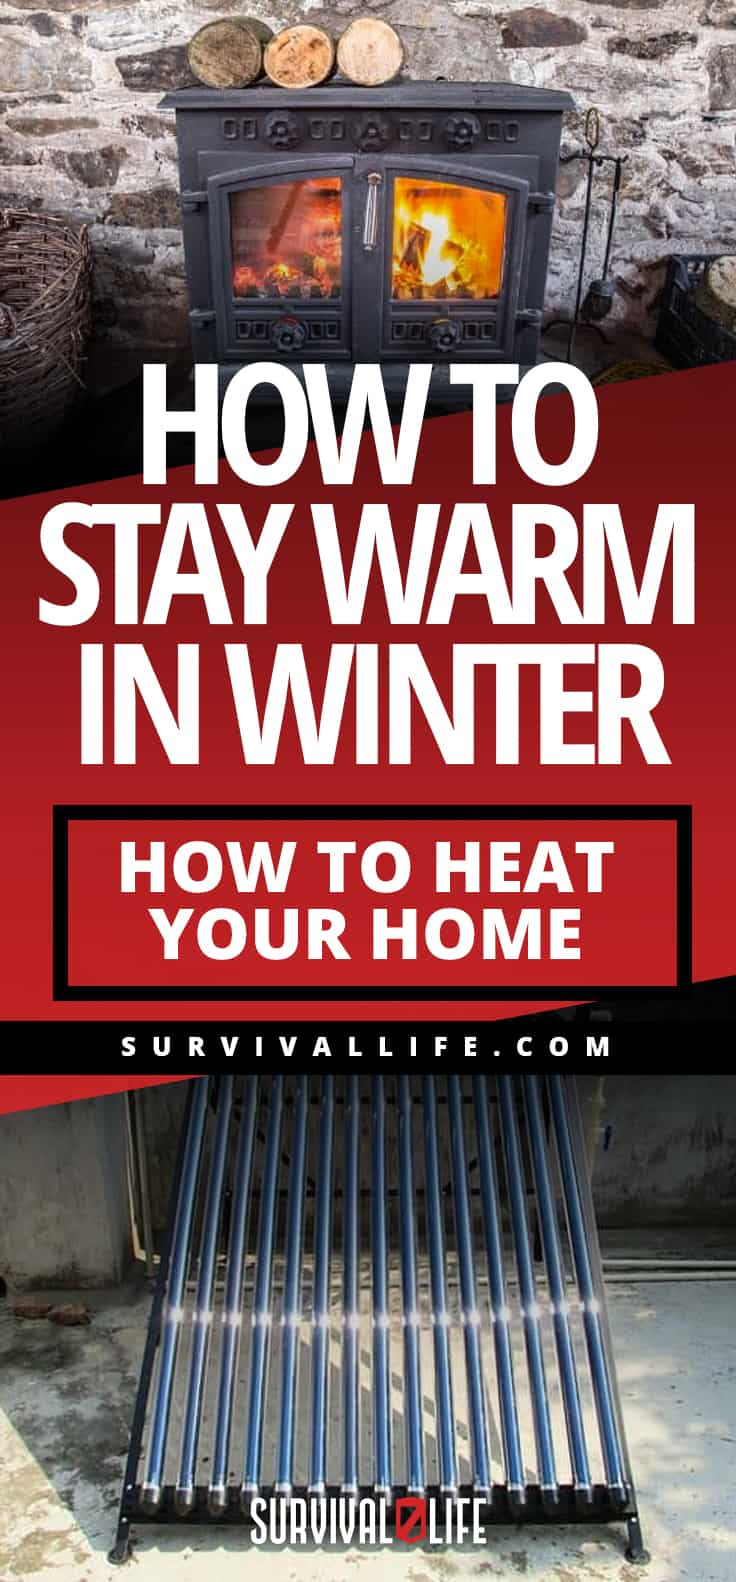 Placard | How To Stay Warm In Winter | How to Heat Your Home